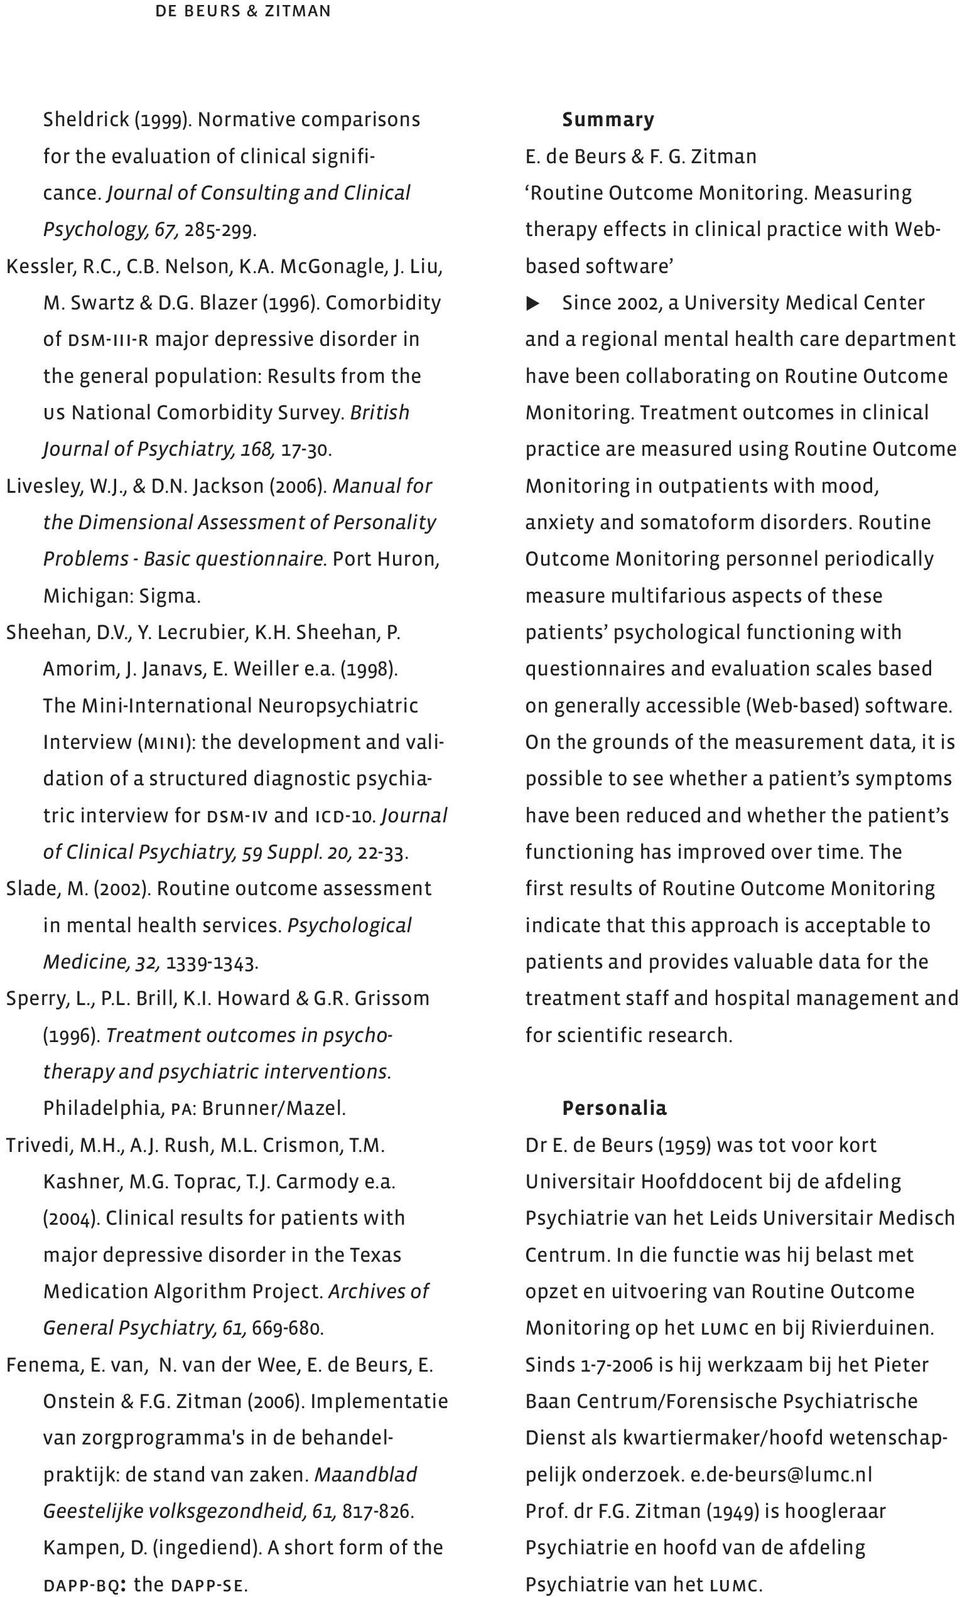 British Journal of Psychiatry, 168, 17-30. Livesley, W.J., & D.N. Jackson (2006). Manual for the Dimensional Assessment of Personality Problems - Basic questionnaire. Port Huron, Michigan: Sigma.